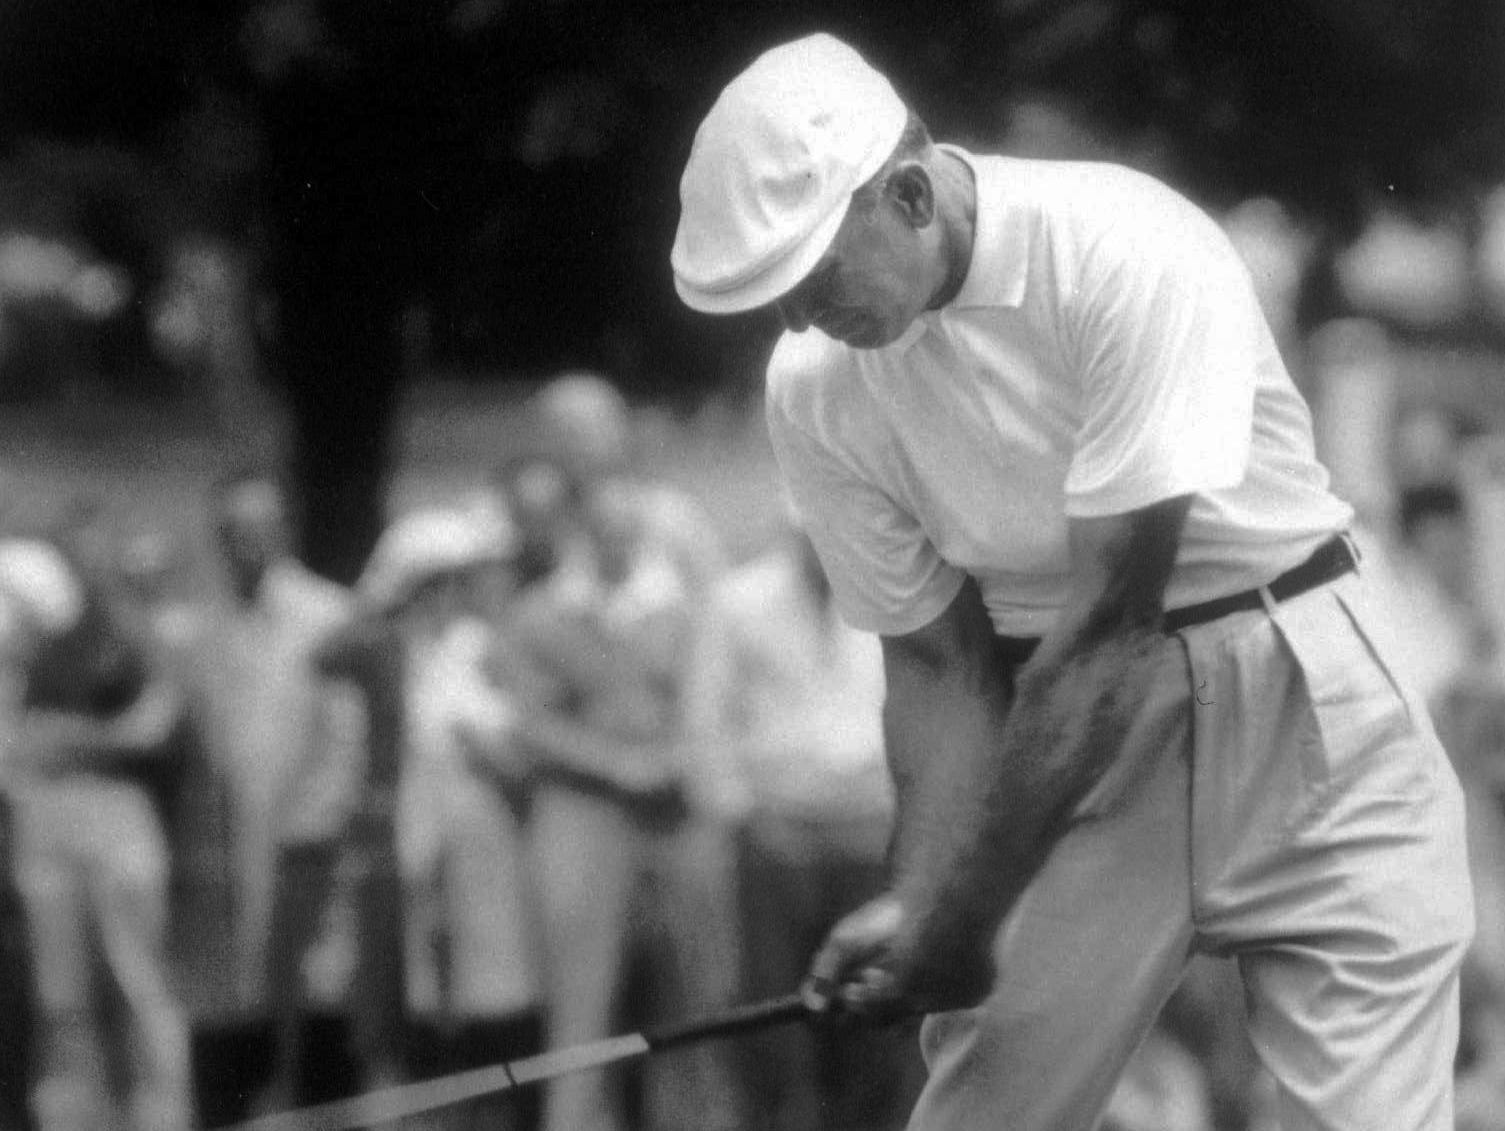 Jules Alexander went to Winged Foot during the U.S. Open in 1959 where he captured iconic images of Ben Hogan. Alexander died Friday a week after falling at home in Rye.